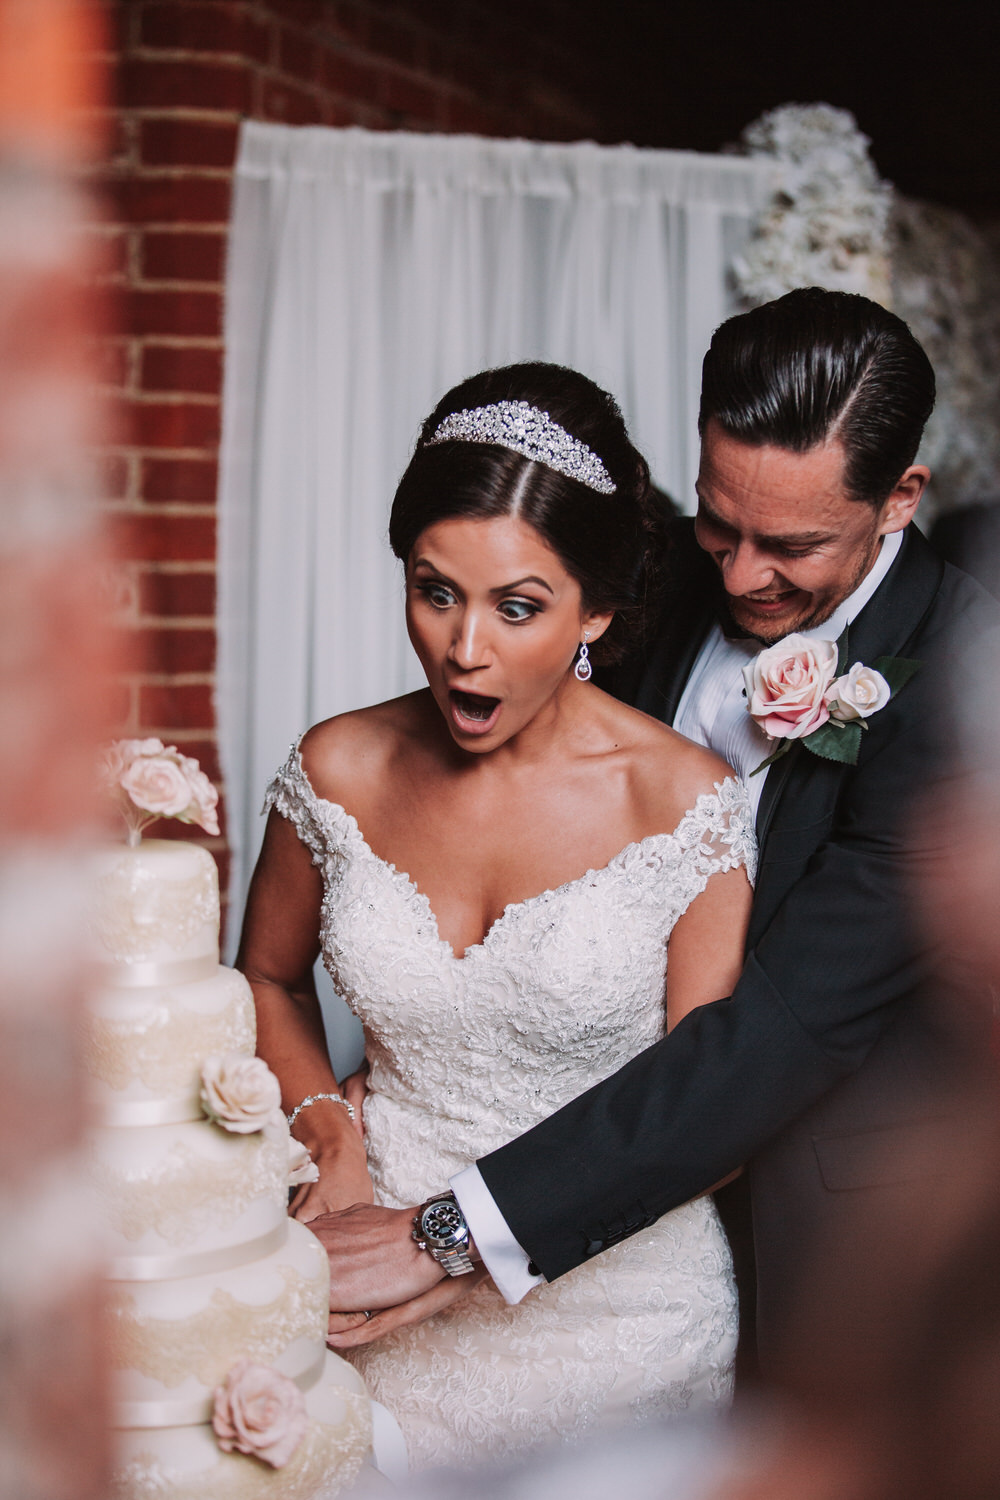 A surprised bride cuts the cake with her husband